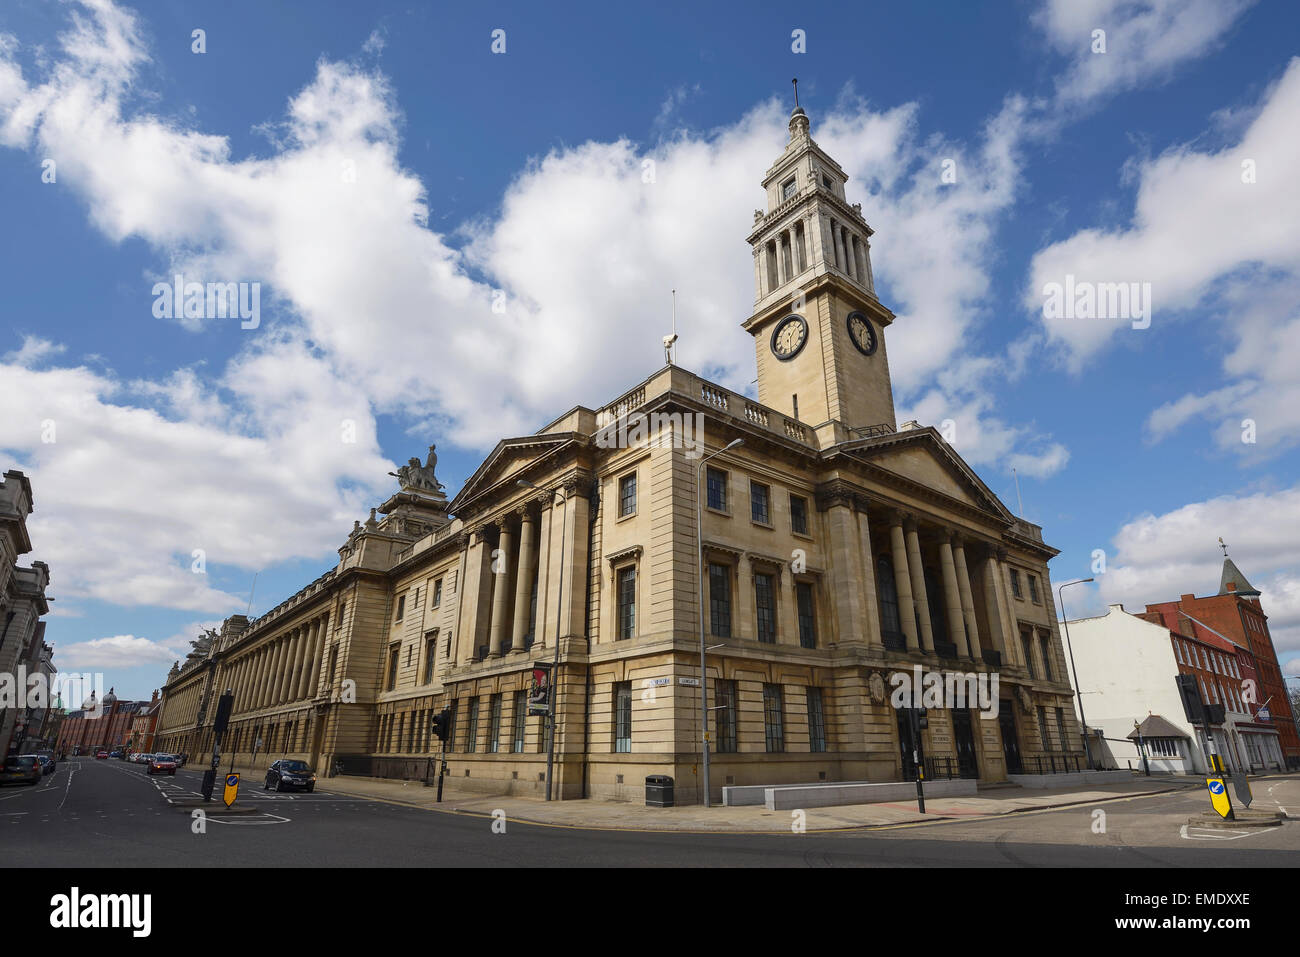 The Hull City Council Guildhall building in Hull city centre UK - Stock Image